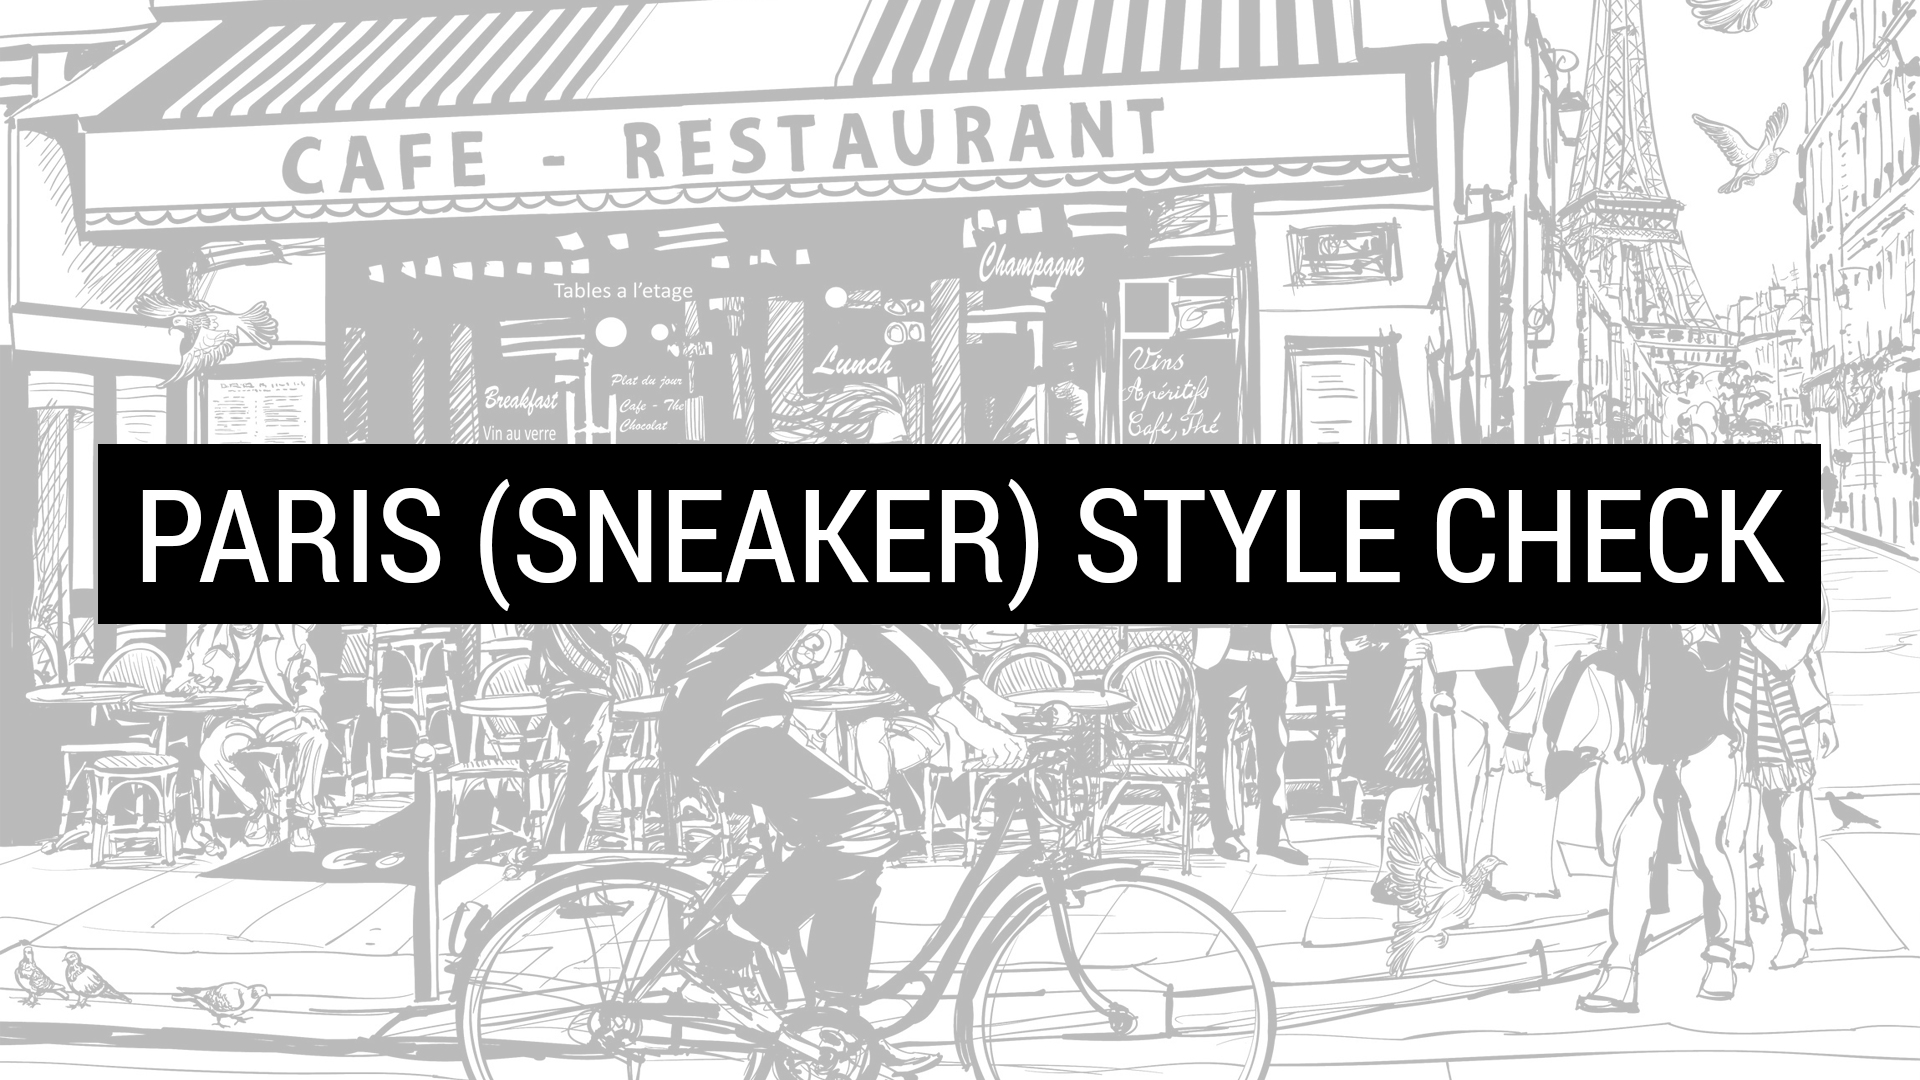 Sneakers & Style Check @ Paris